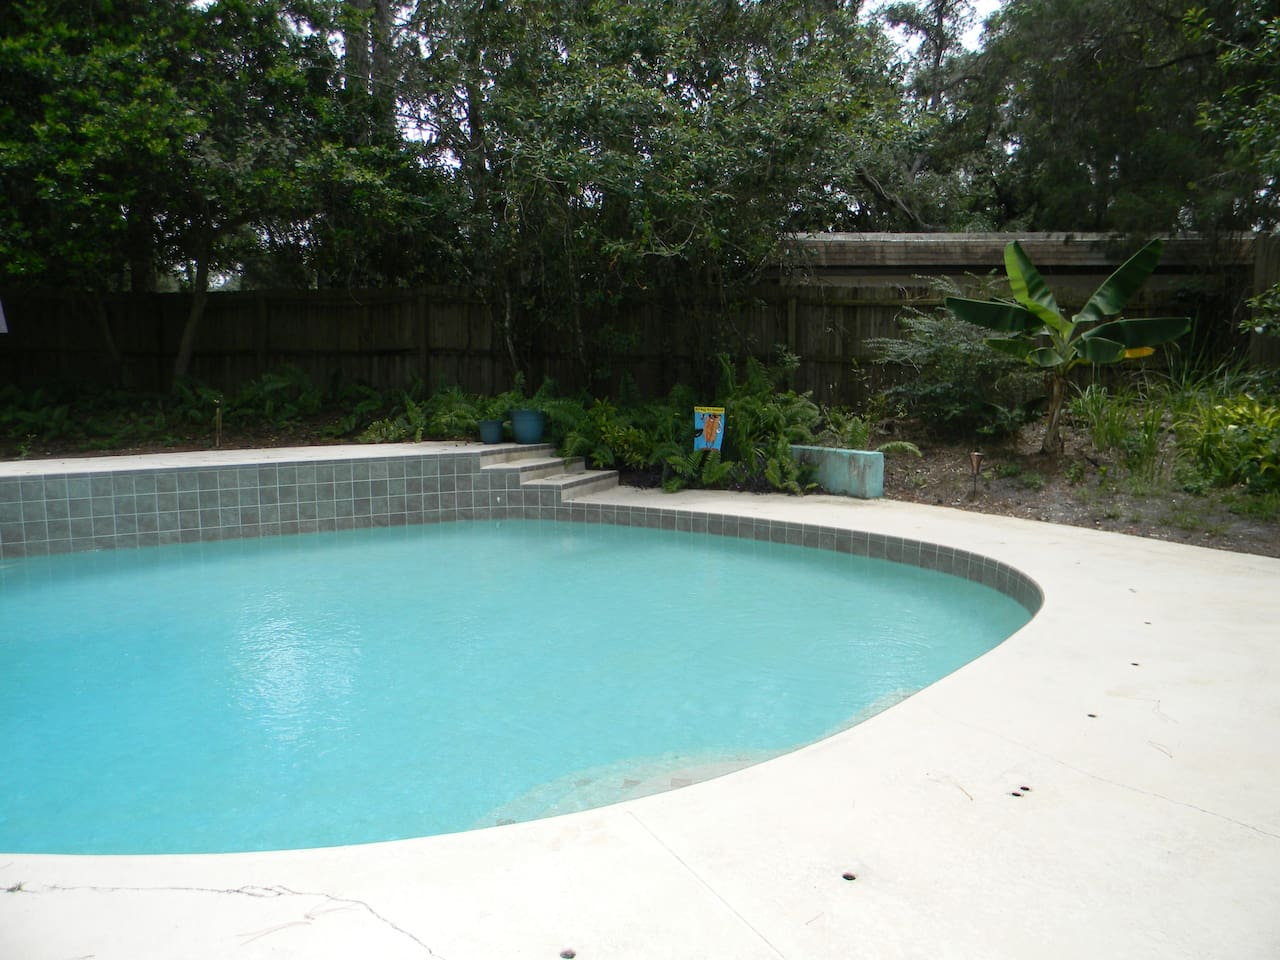 Shallow End of the pool with stair entrance and banana tree to the right.